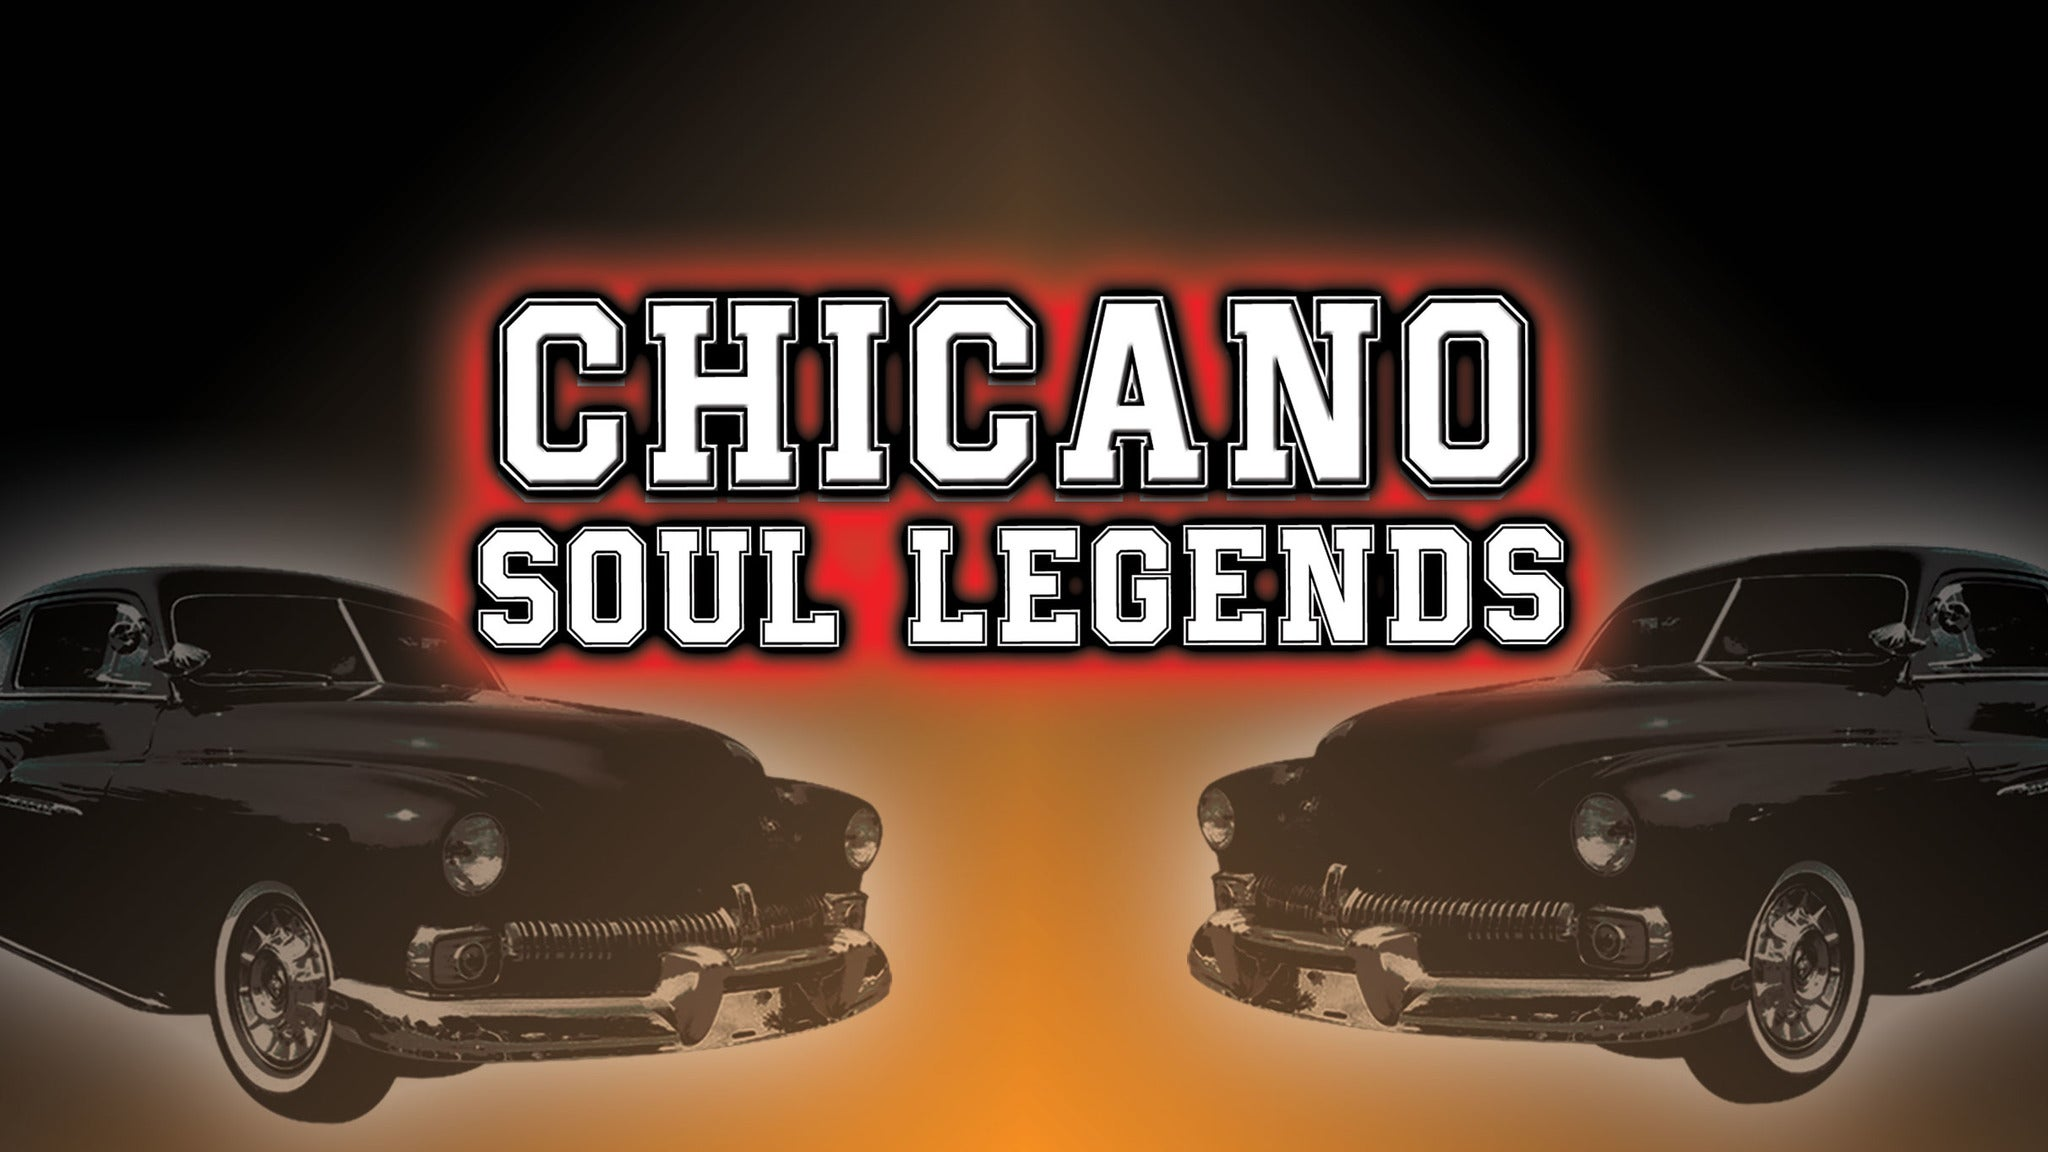 Chicano Soul Legends at Honda Center